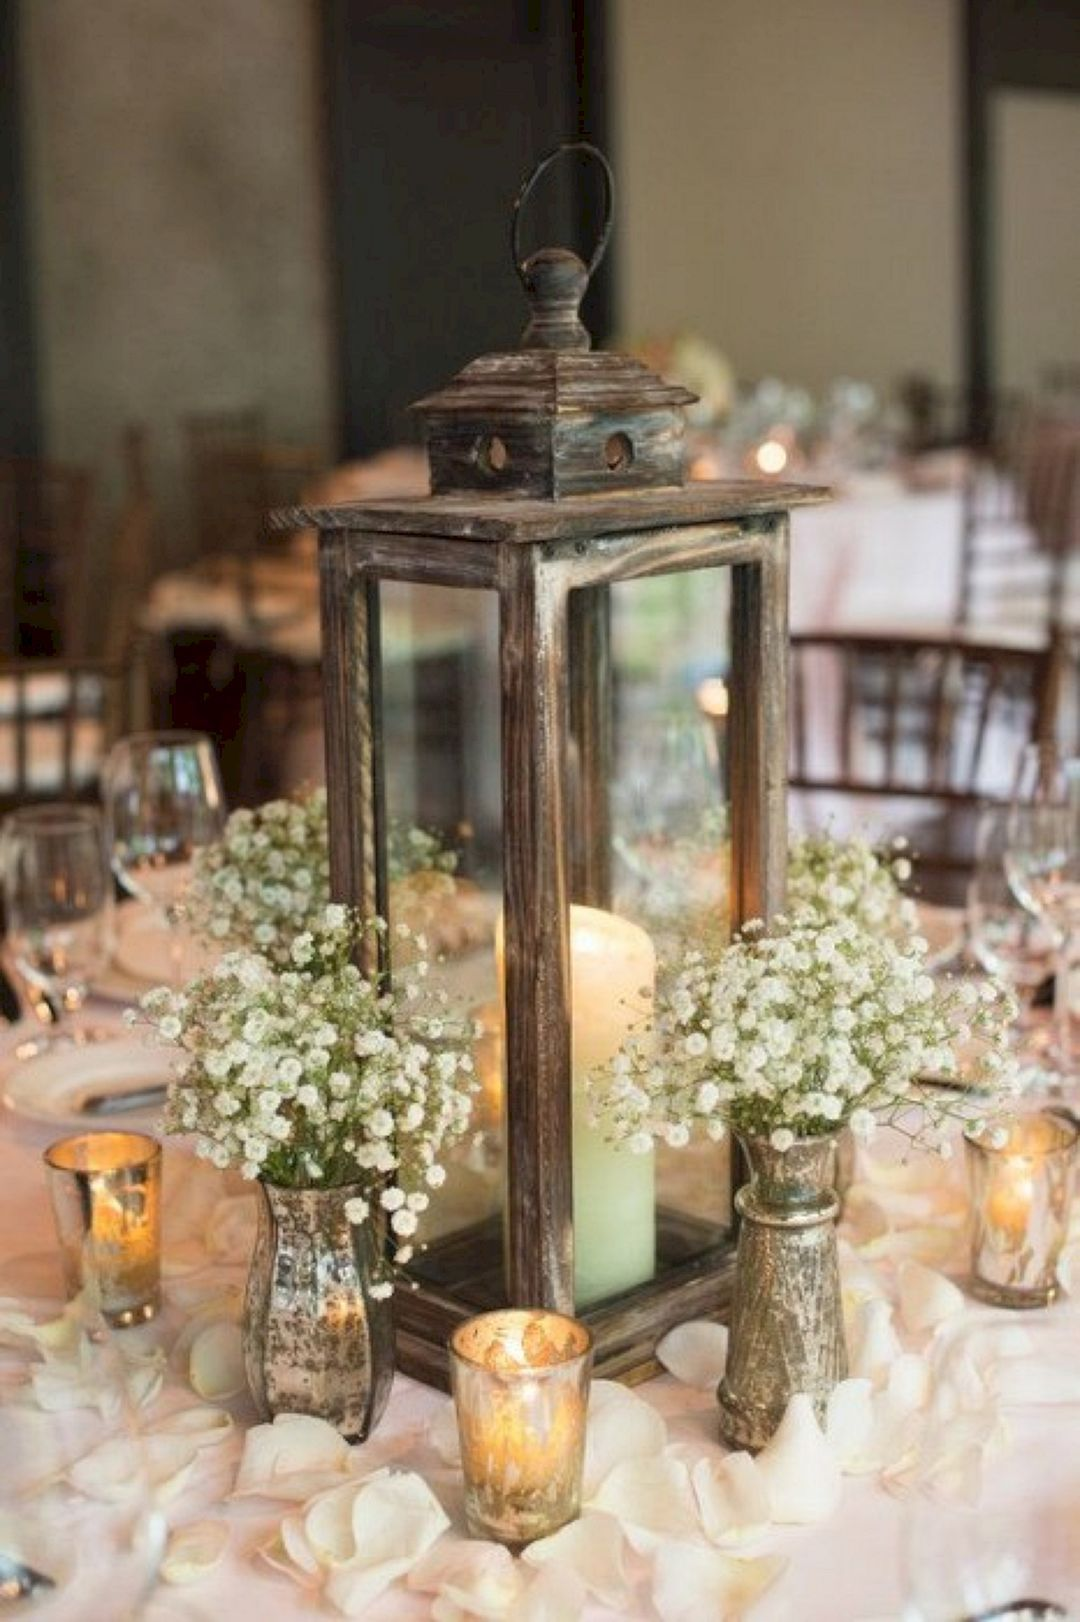 Wedding decoration ideas in kerala   DIY Creative Rustic Chic Wedding Centerpieces Ideas  Wedding